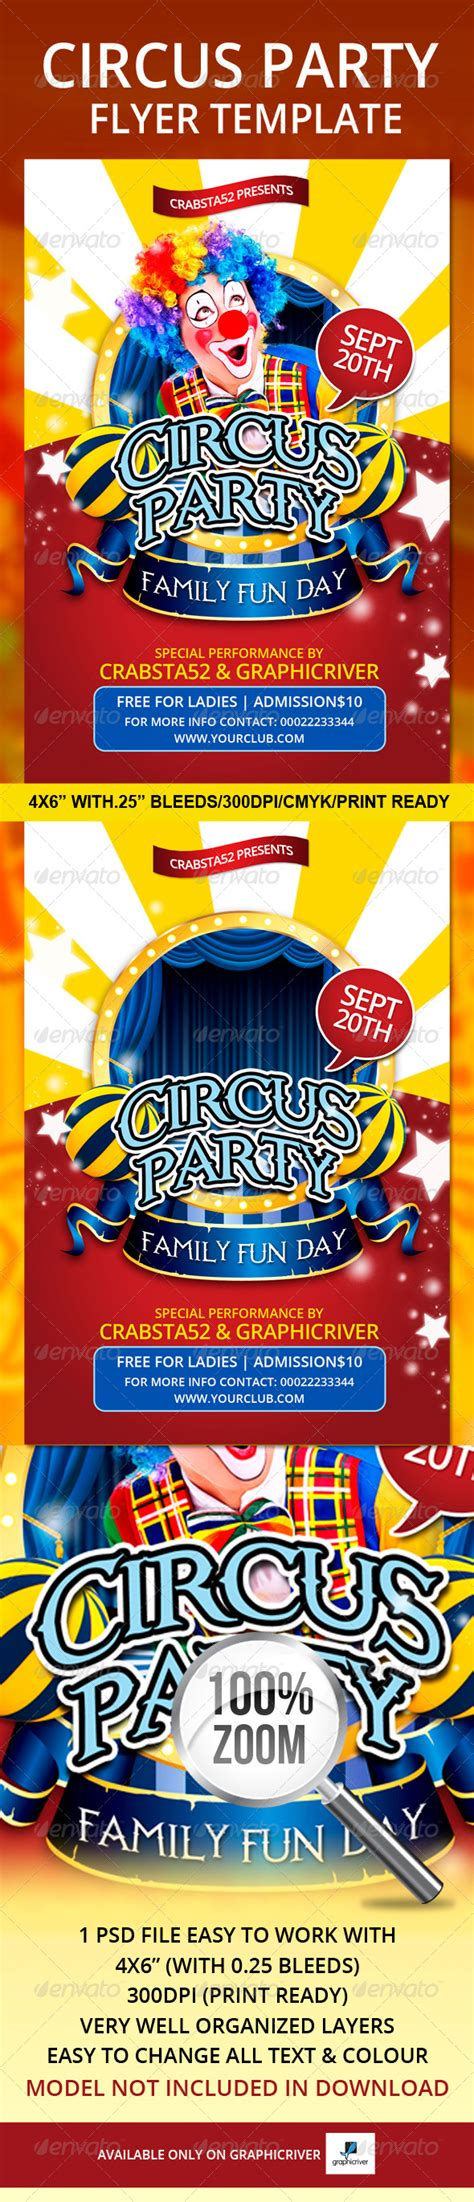 Circus Party Flyer Template Graphicriver Graphicriver Iii Flyer Template